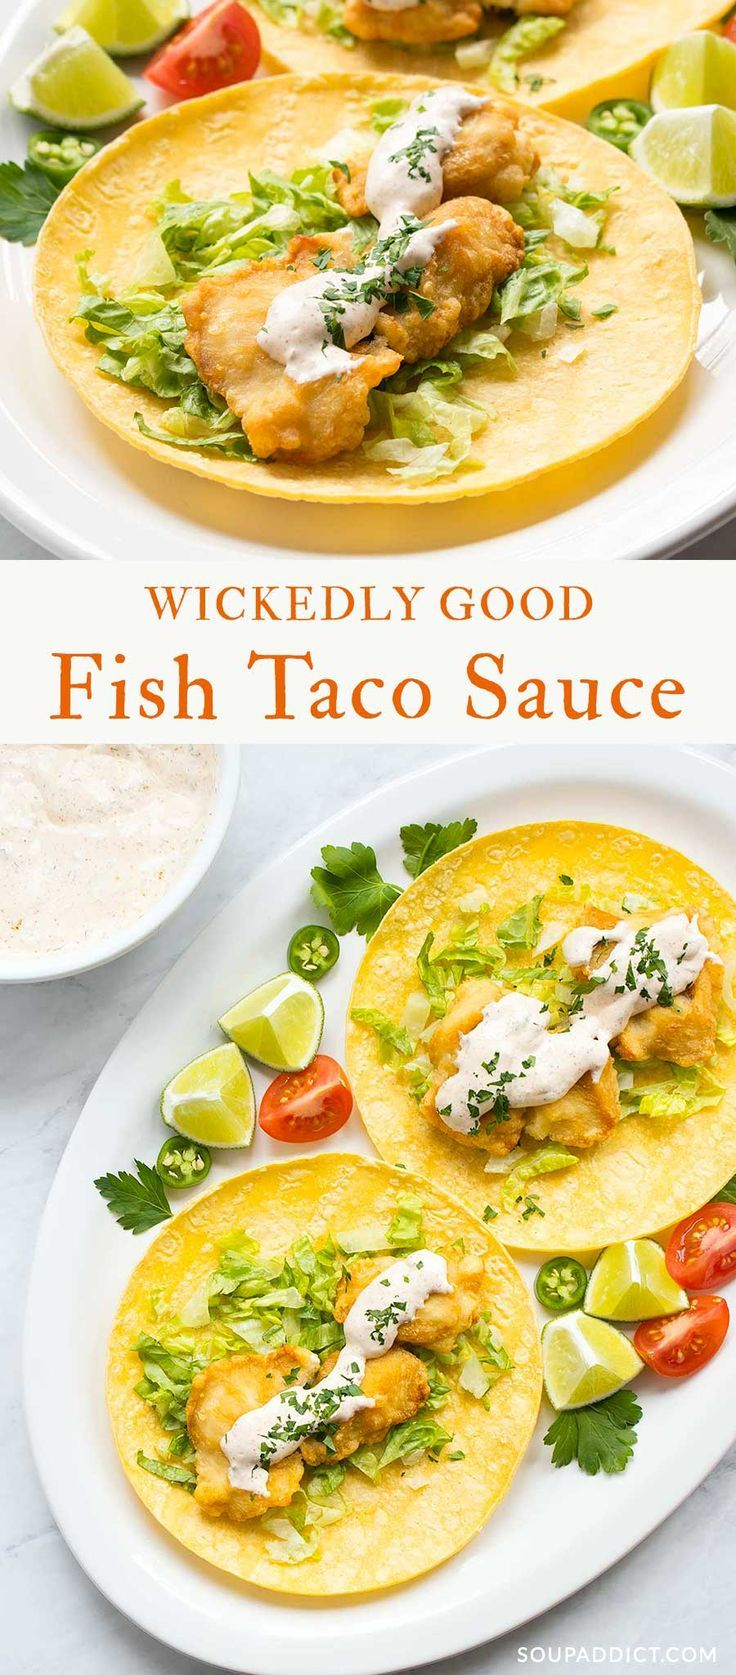 Best 25 taco sauce recipes ideas on pinterest fish taco for Best fish taco recipe